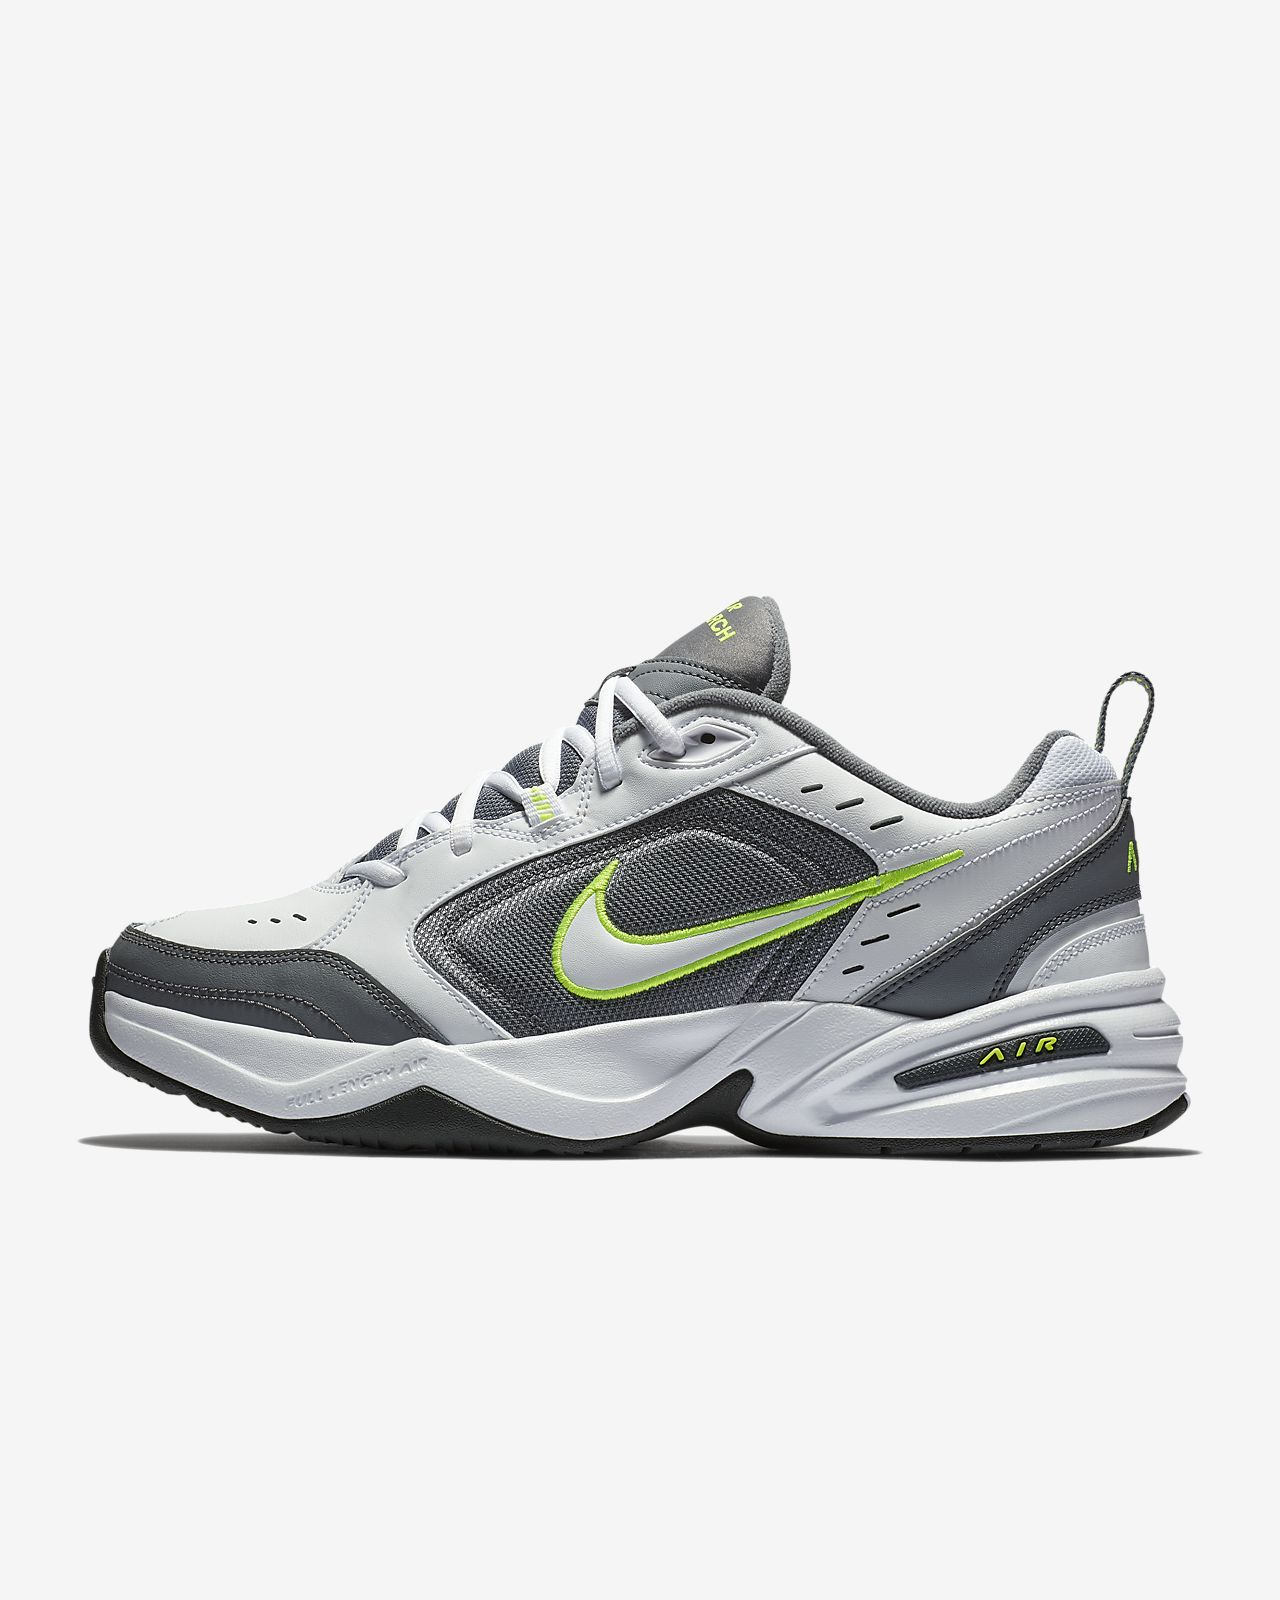 free shipping 6730b 930a7 ... Nike Air Monarch IV Lifestyle Gym Shoe